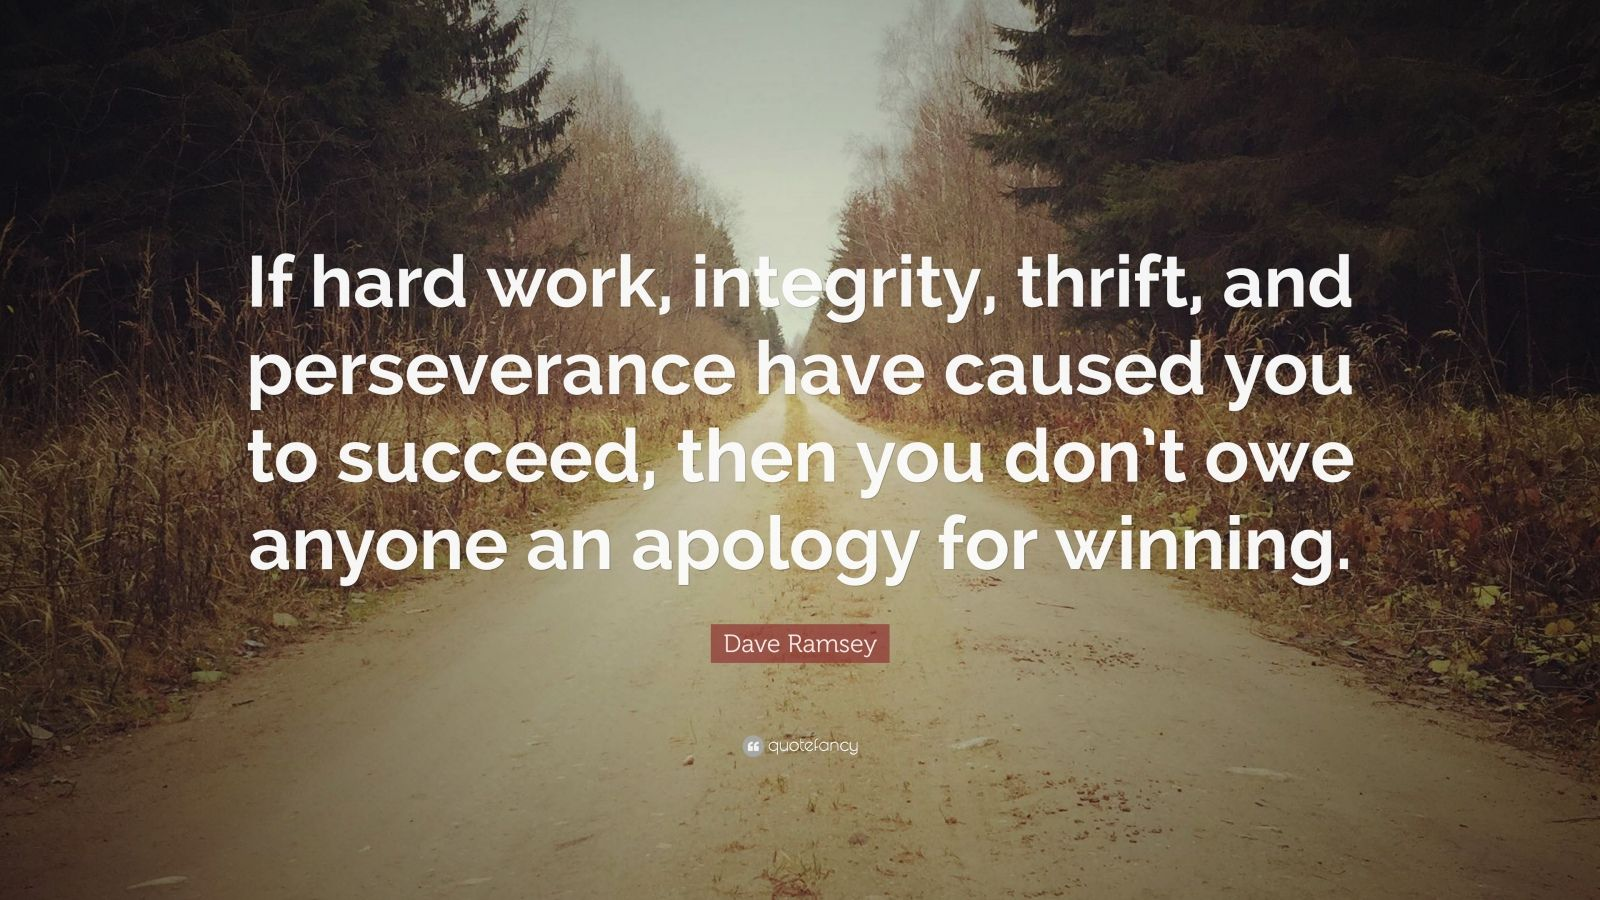 """Dave Ramsey Quote: """"If hard work, integrity, thrift, and perseverance have caused you to succeed, then you don't owe anyone an apology for winning."""""""